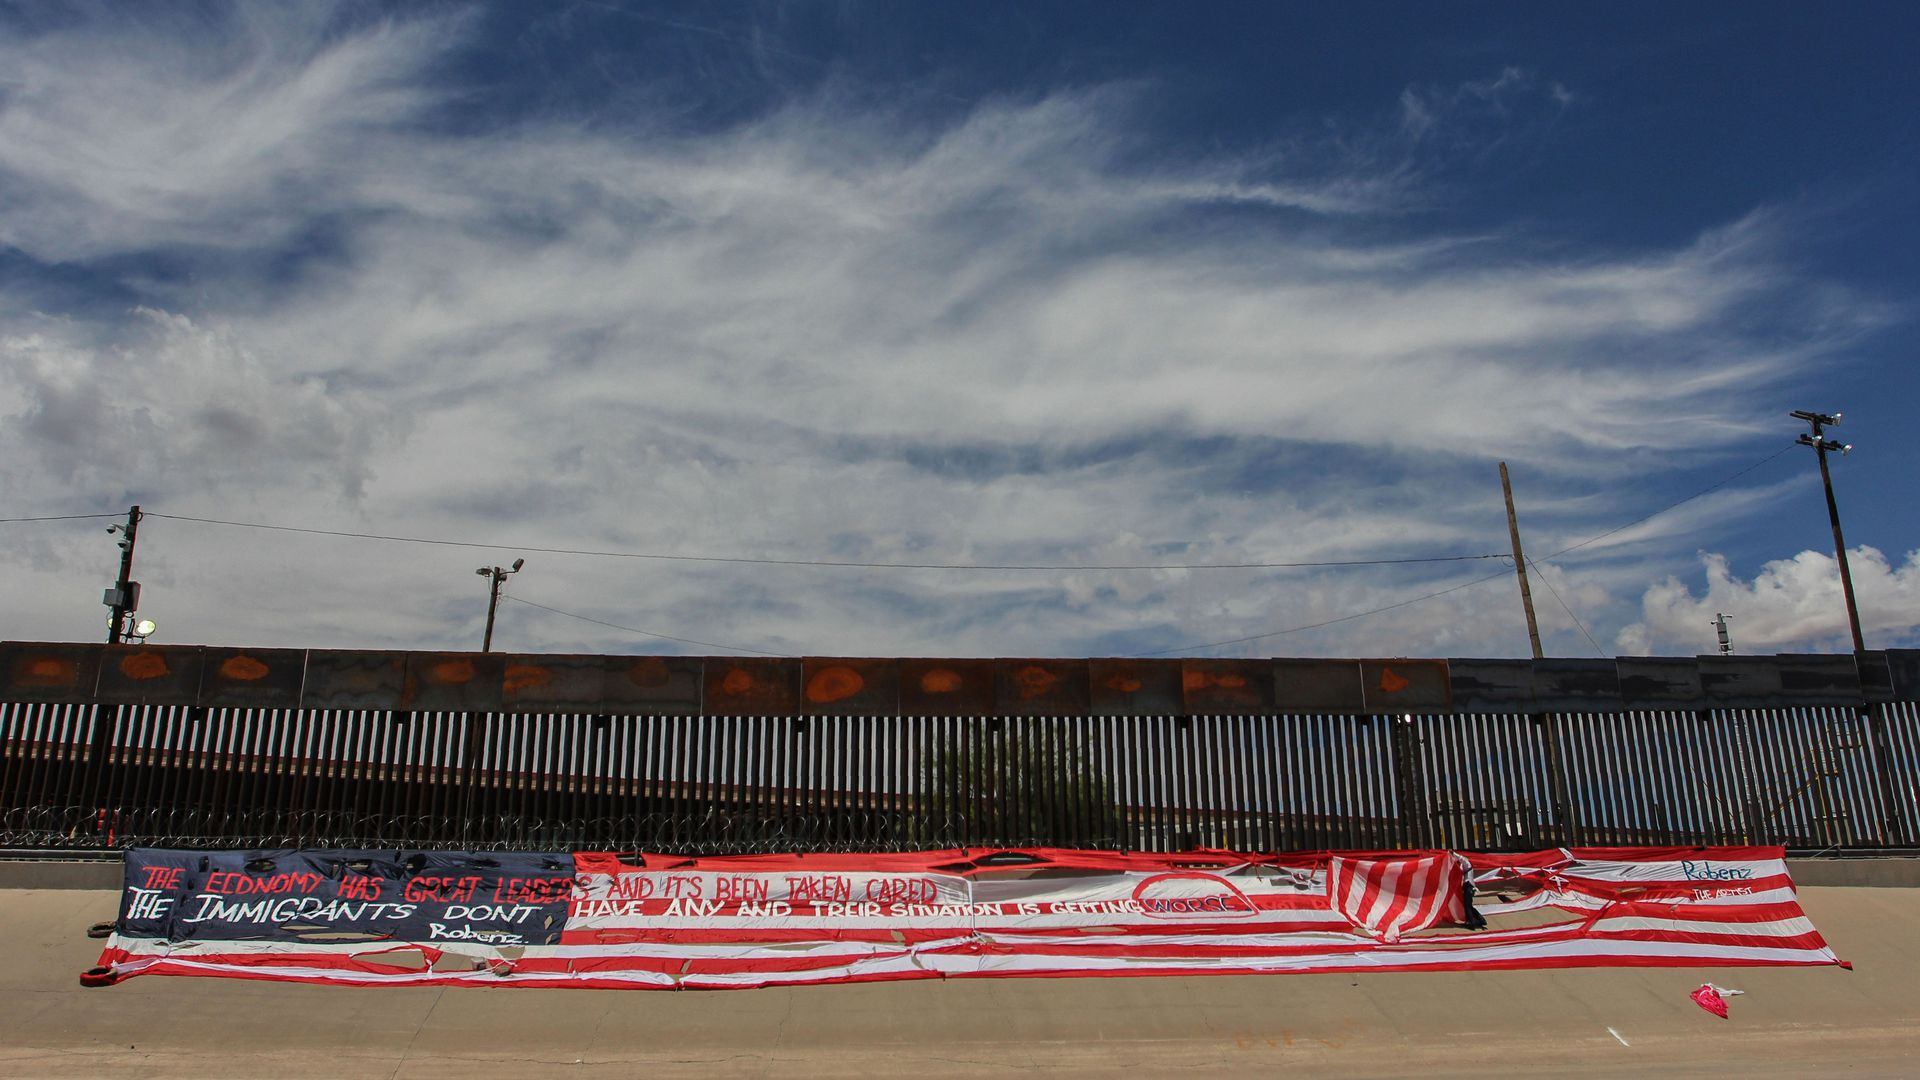 This image shows a larger horizontal American flag in front of a wall at the southern border.